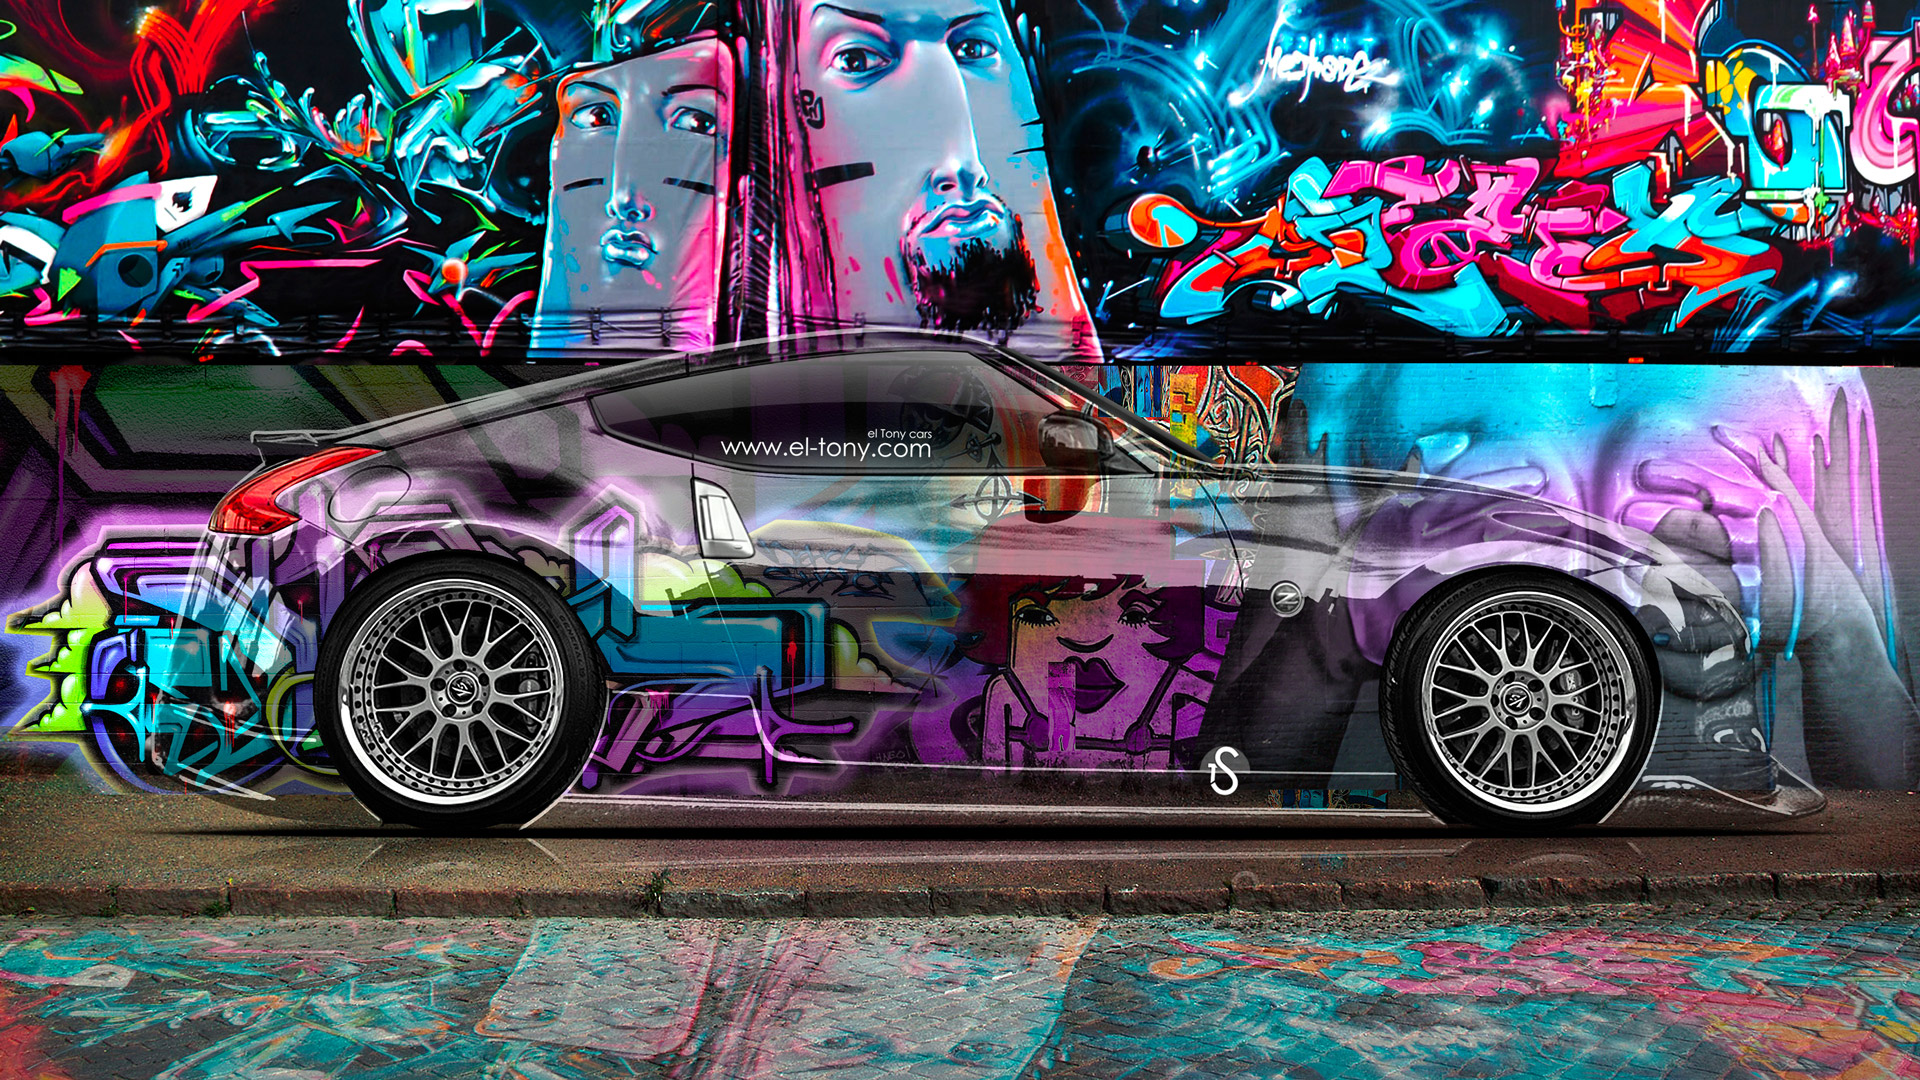 Nissan 370z Jdm Side Crystal Graffiti Car 2014 El Tony